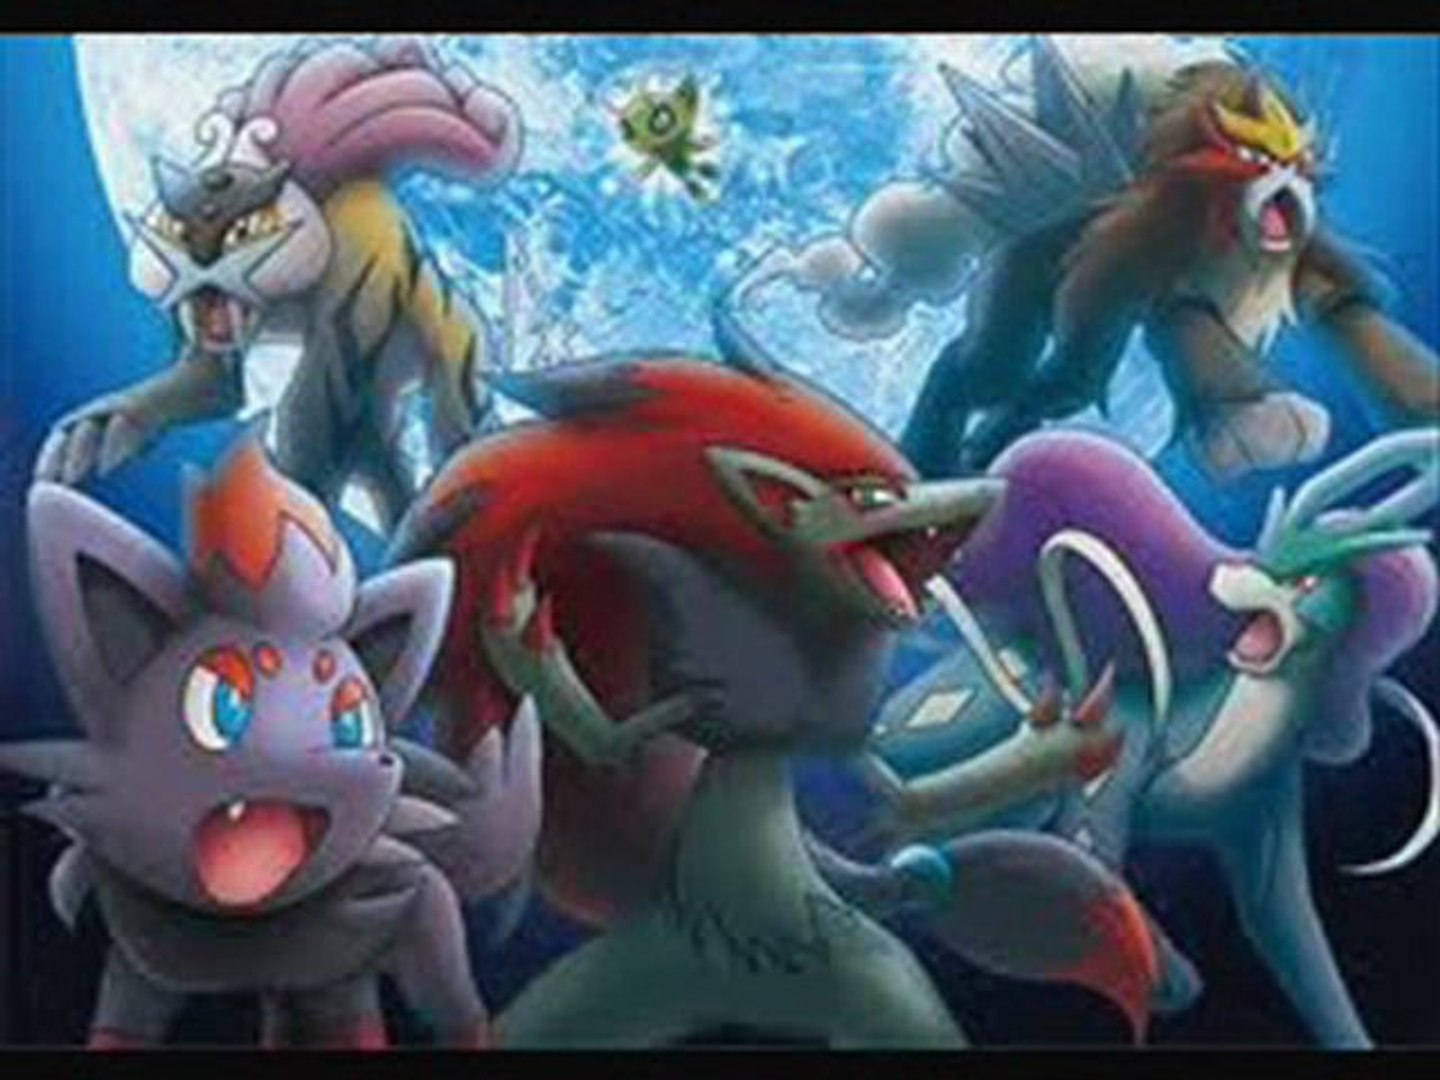 Zoroark Master Of Illusions Hd Trailer Movie Dailymotion Video